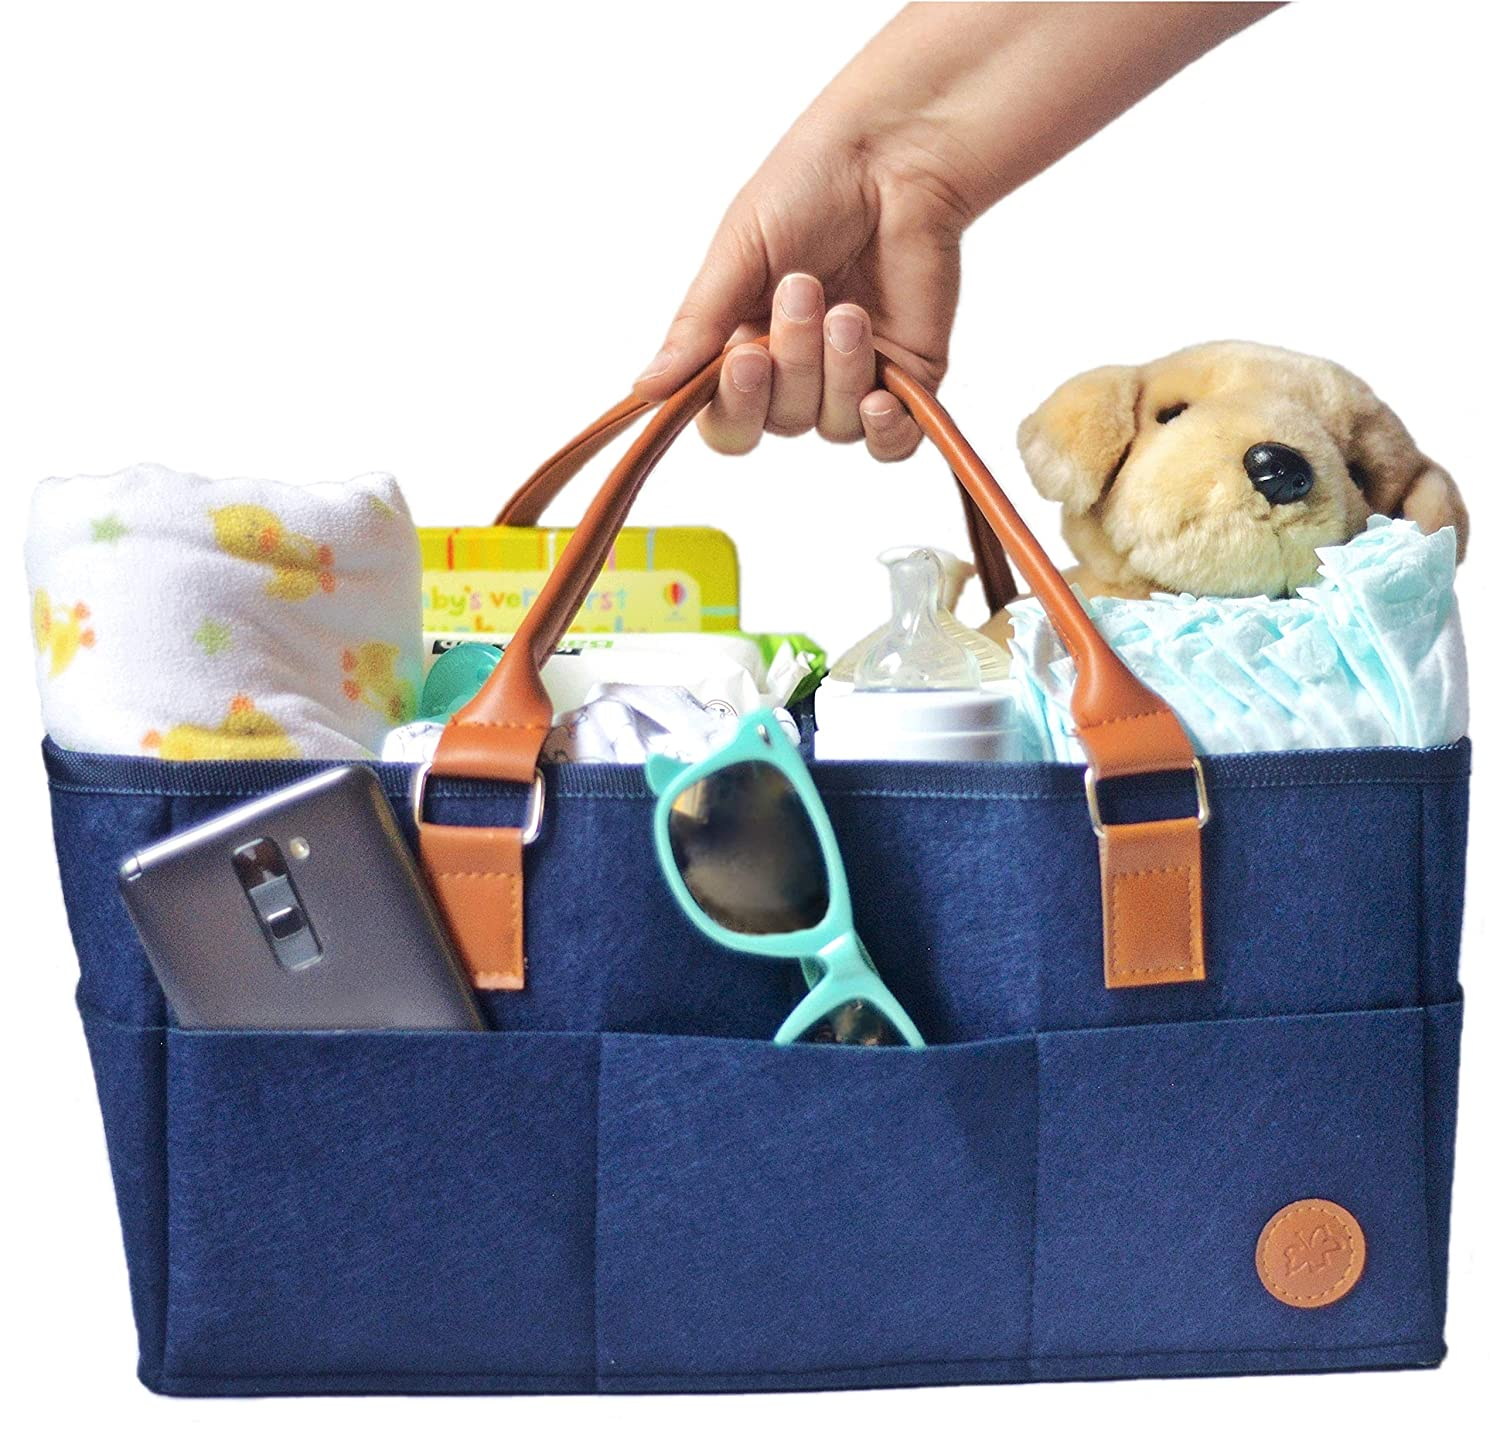 NEW Baby Diaper Caddy by Hibiscus & Co. | Nursery Organizer | Large Portable Car Travel Tote Bag | Storage Bin for Diaper Changing Table| Newborn Essentials | Girl Boy Baby Shower Registry Gift Basket Navy101507g